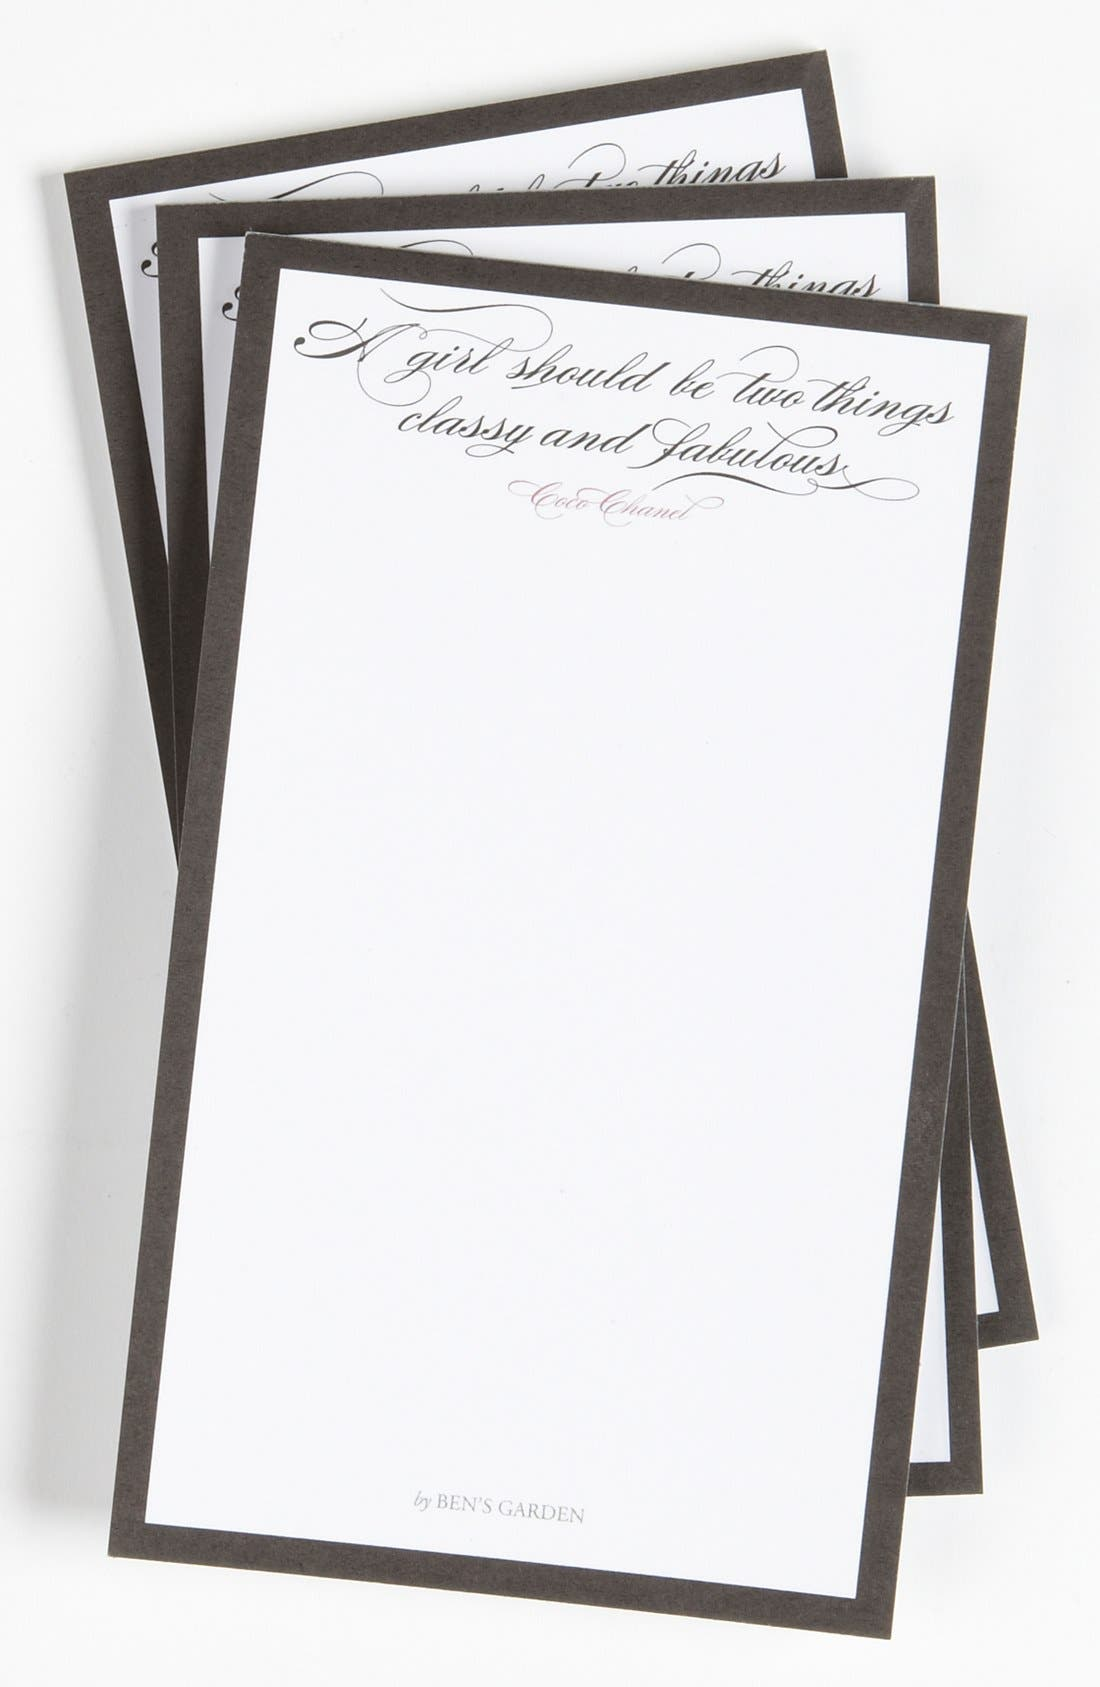 Alternate Image 1 Selected - Ben's Garden 'Classy and Fabulous' Notepad